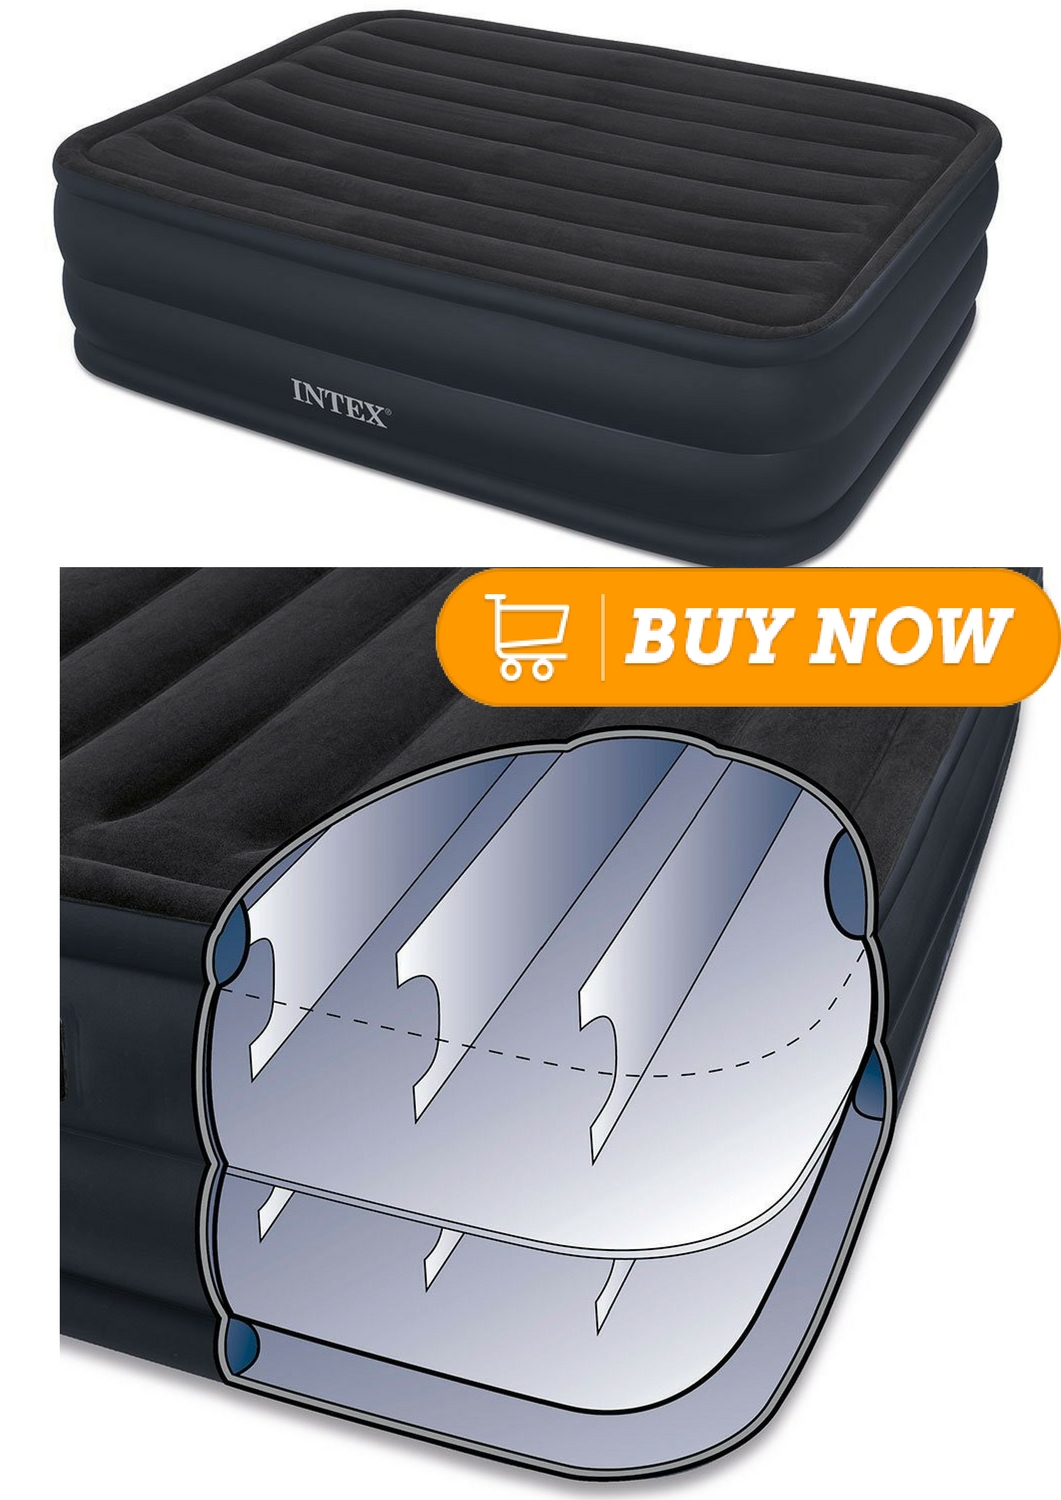 twin pillow raised airbed air mattress inflatable pump top 2